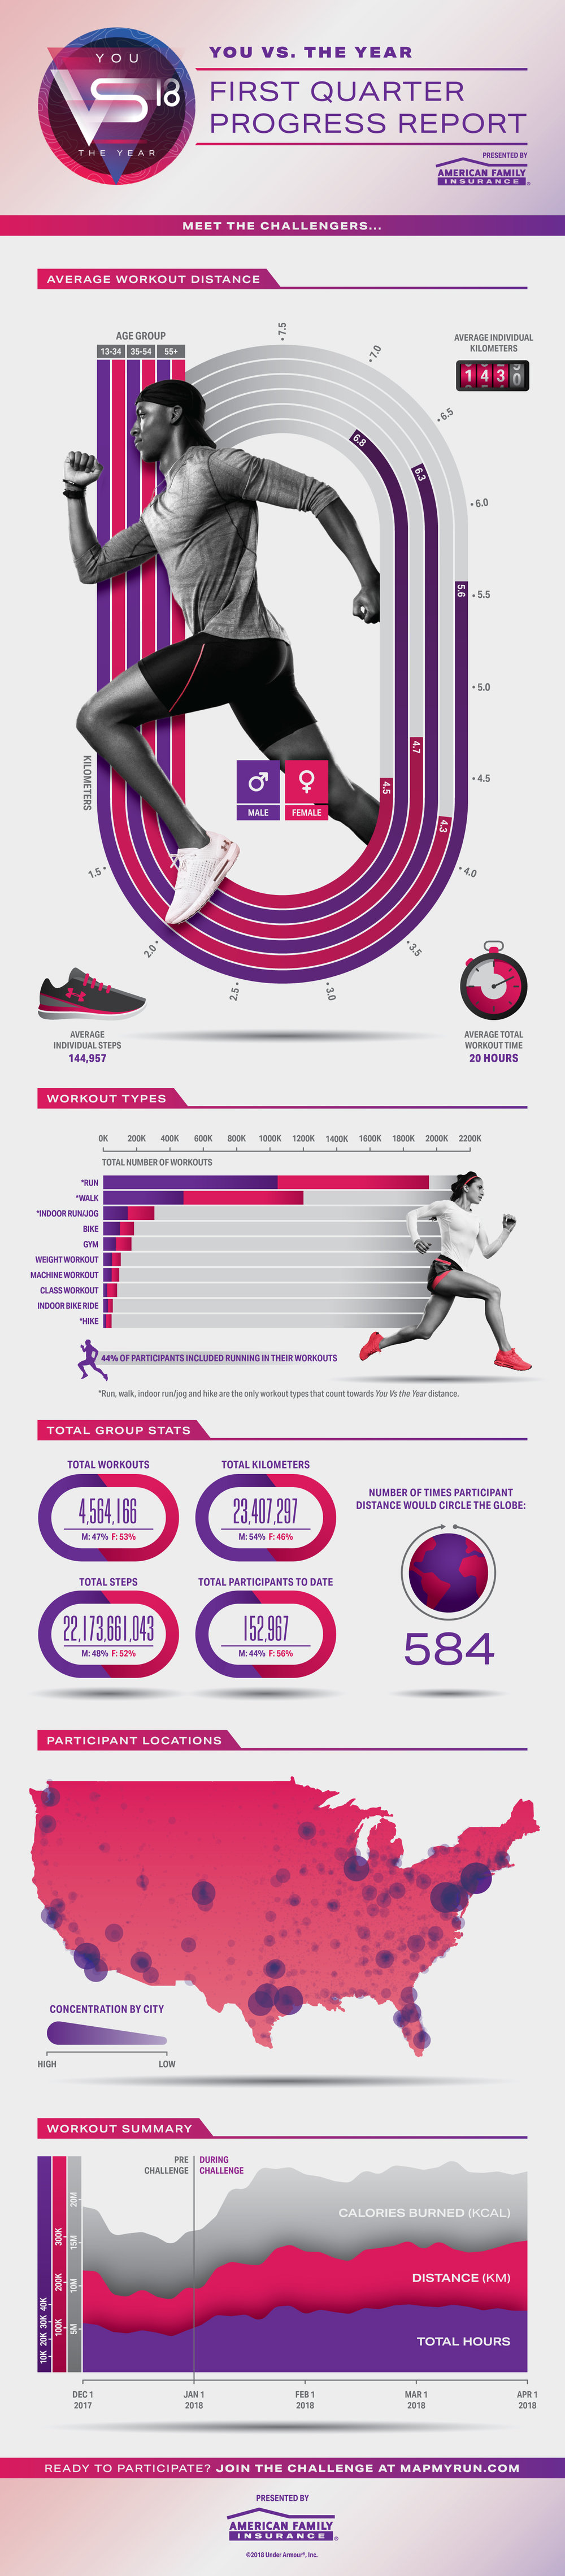 Under Armour You Vs. The Year Infographic